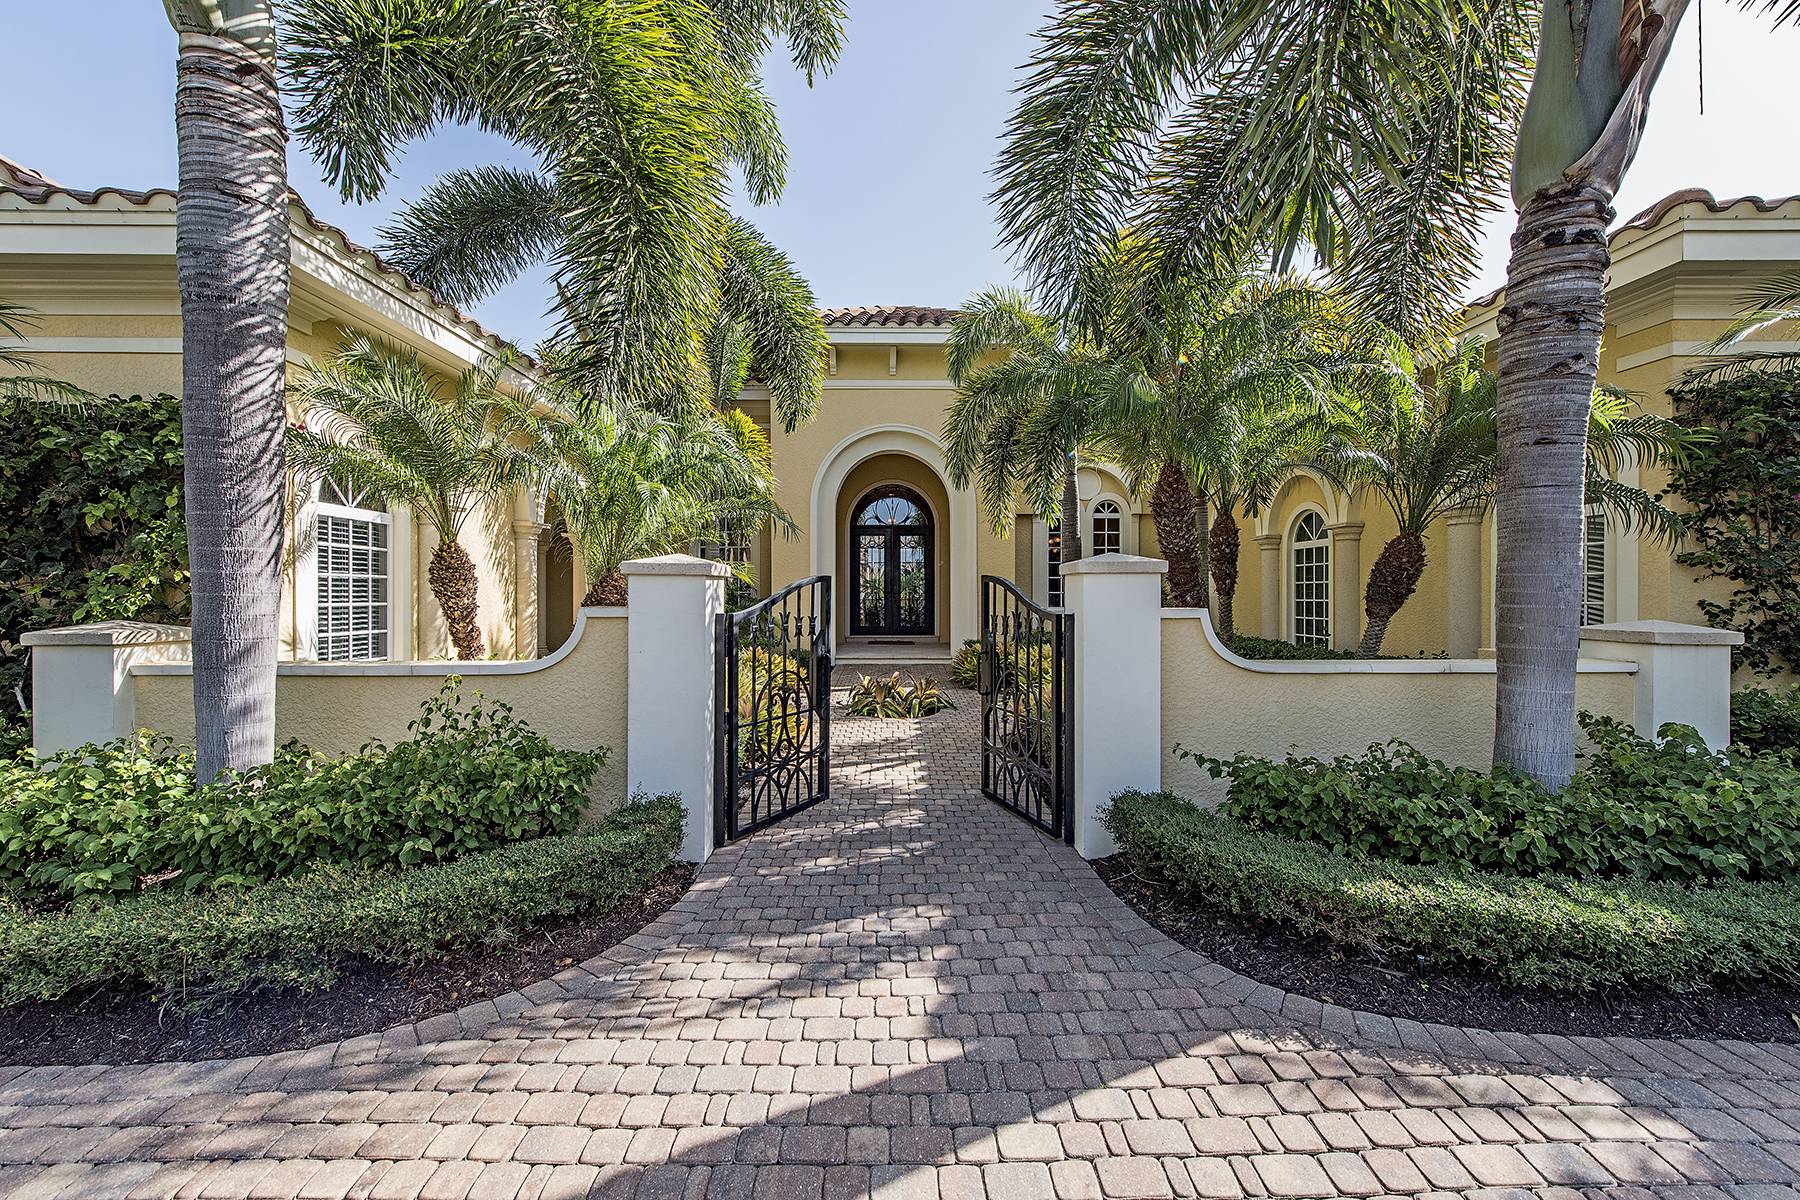 Single Family Home for Sale at SHADOW WOOD AT THE BROOKS 22130 Shallowater Ln Bonita Springs, Florida 34135 United States